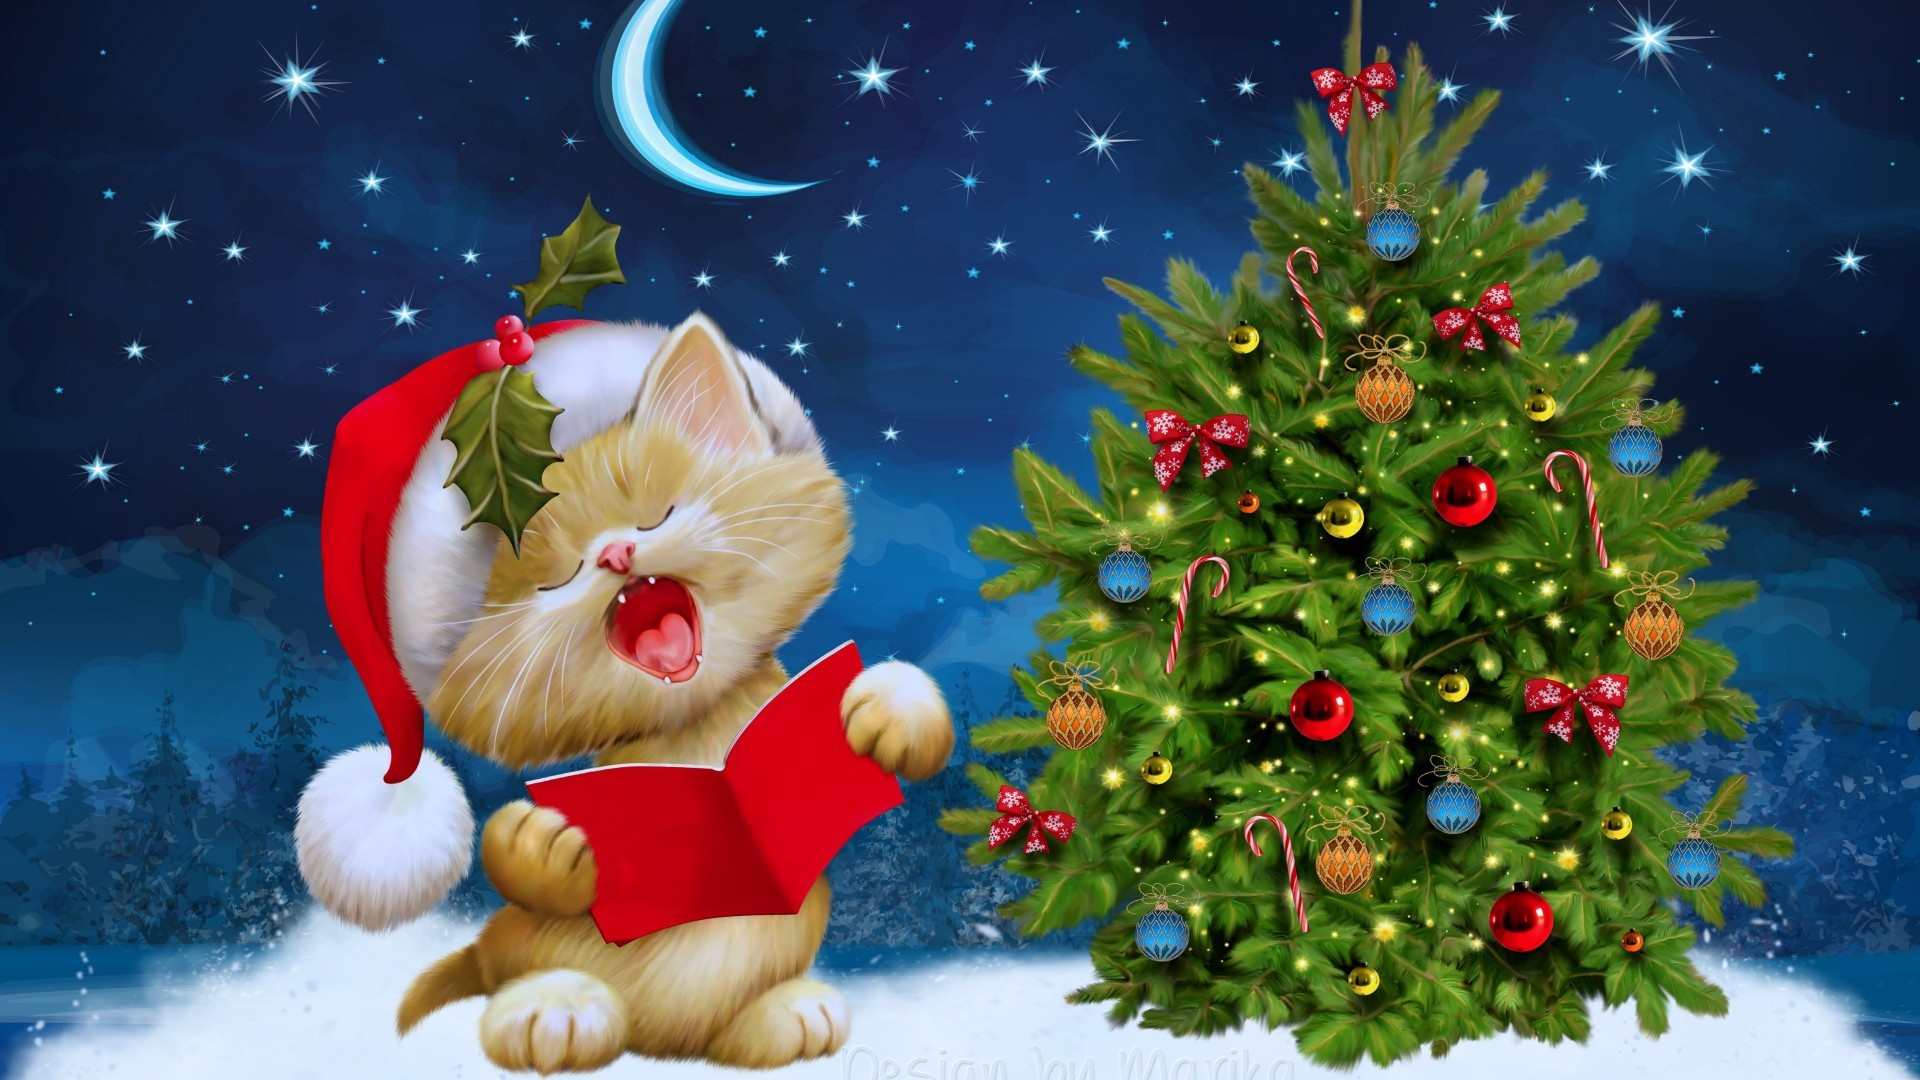 Santa Kitten Singing Christmas Carols Wallpaper for Desktop 1920x1080